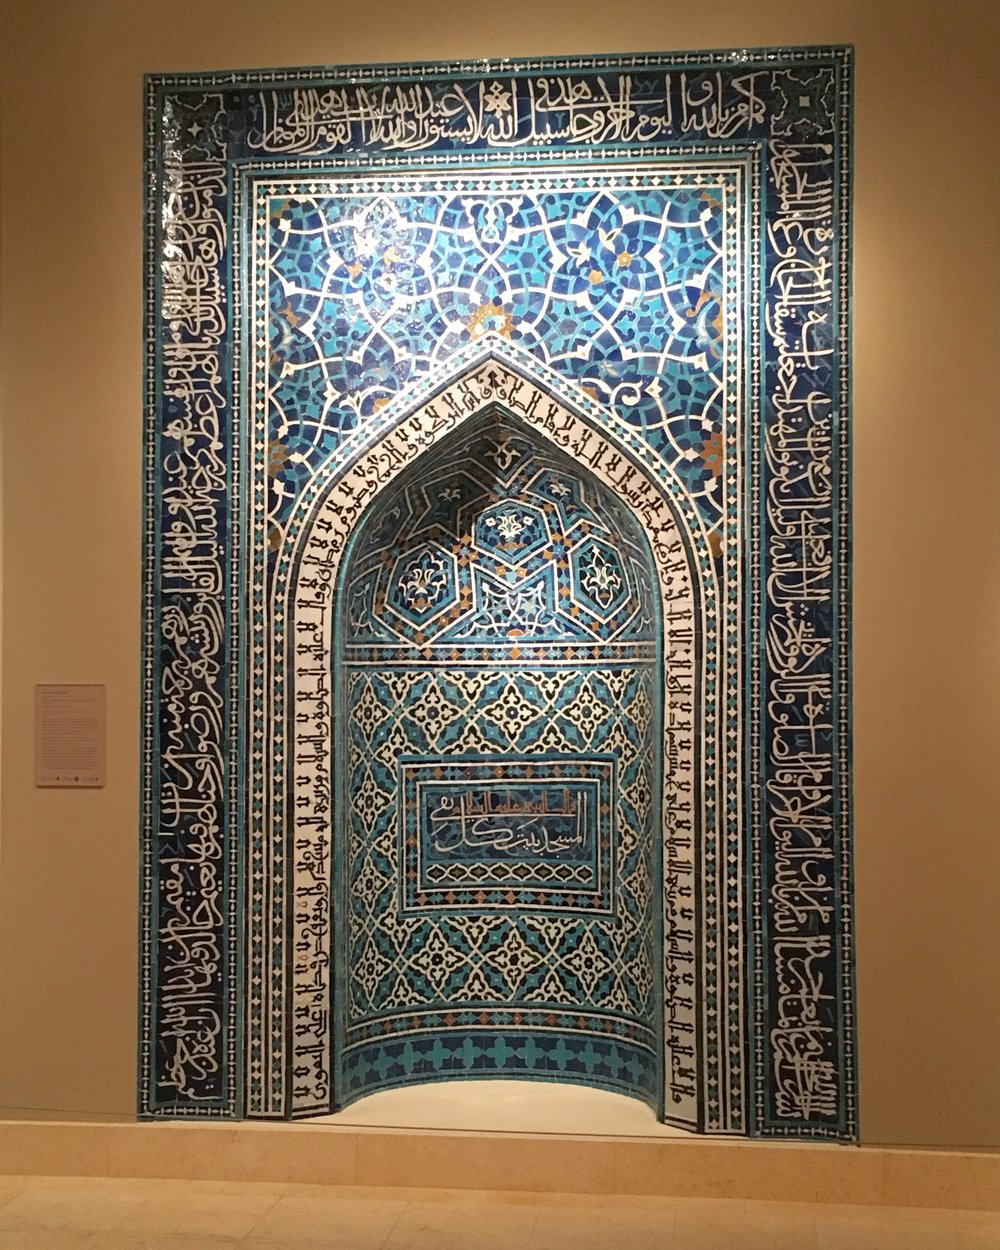 Turquoise Mosaic Prayer Niche, Metropolitan Museum of Art, Islamic Wing.